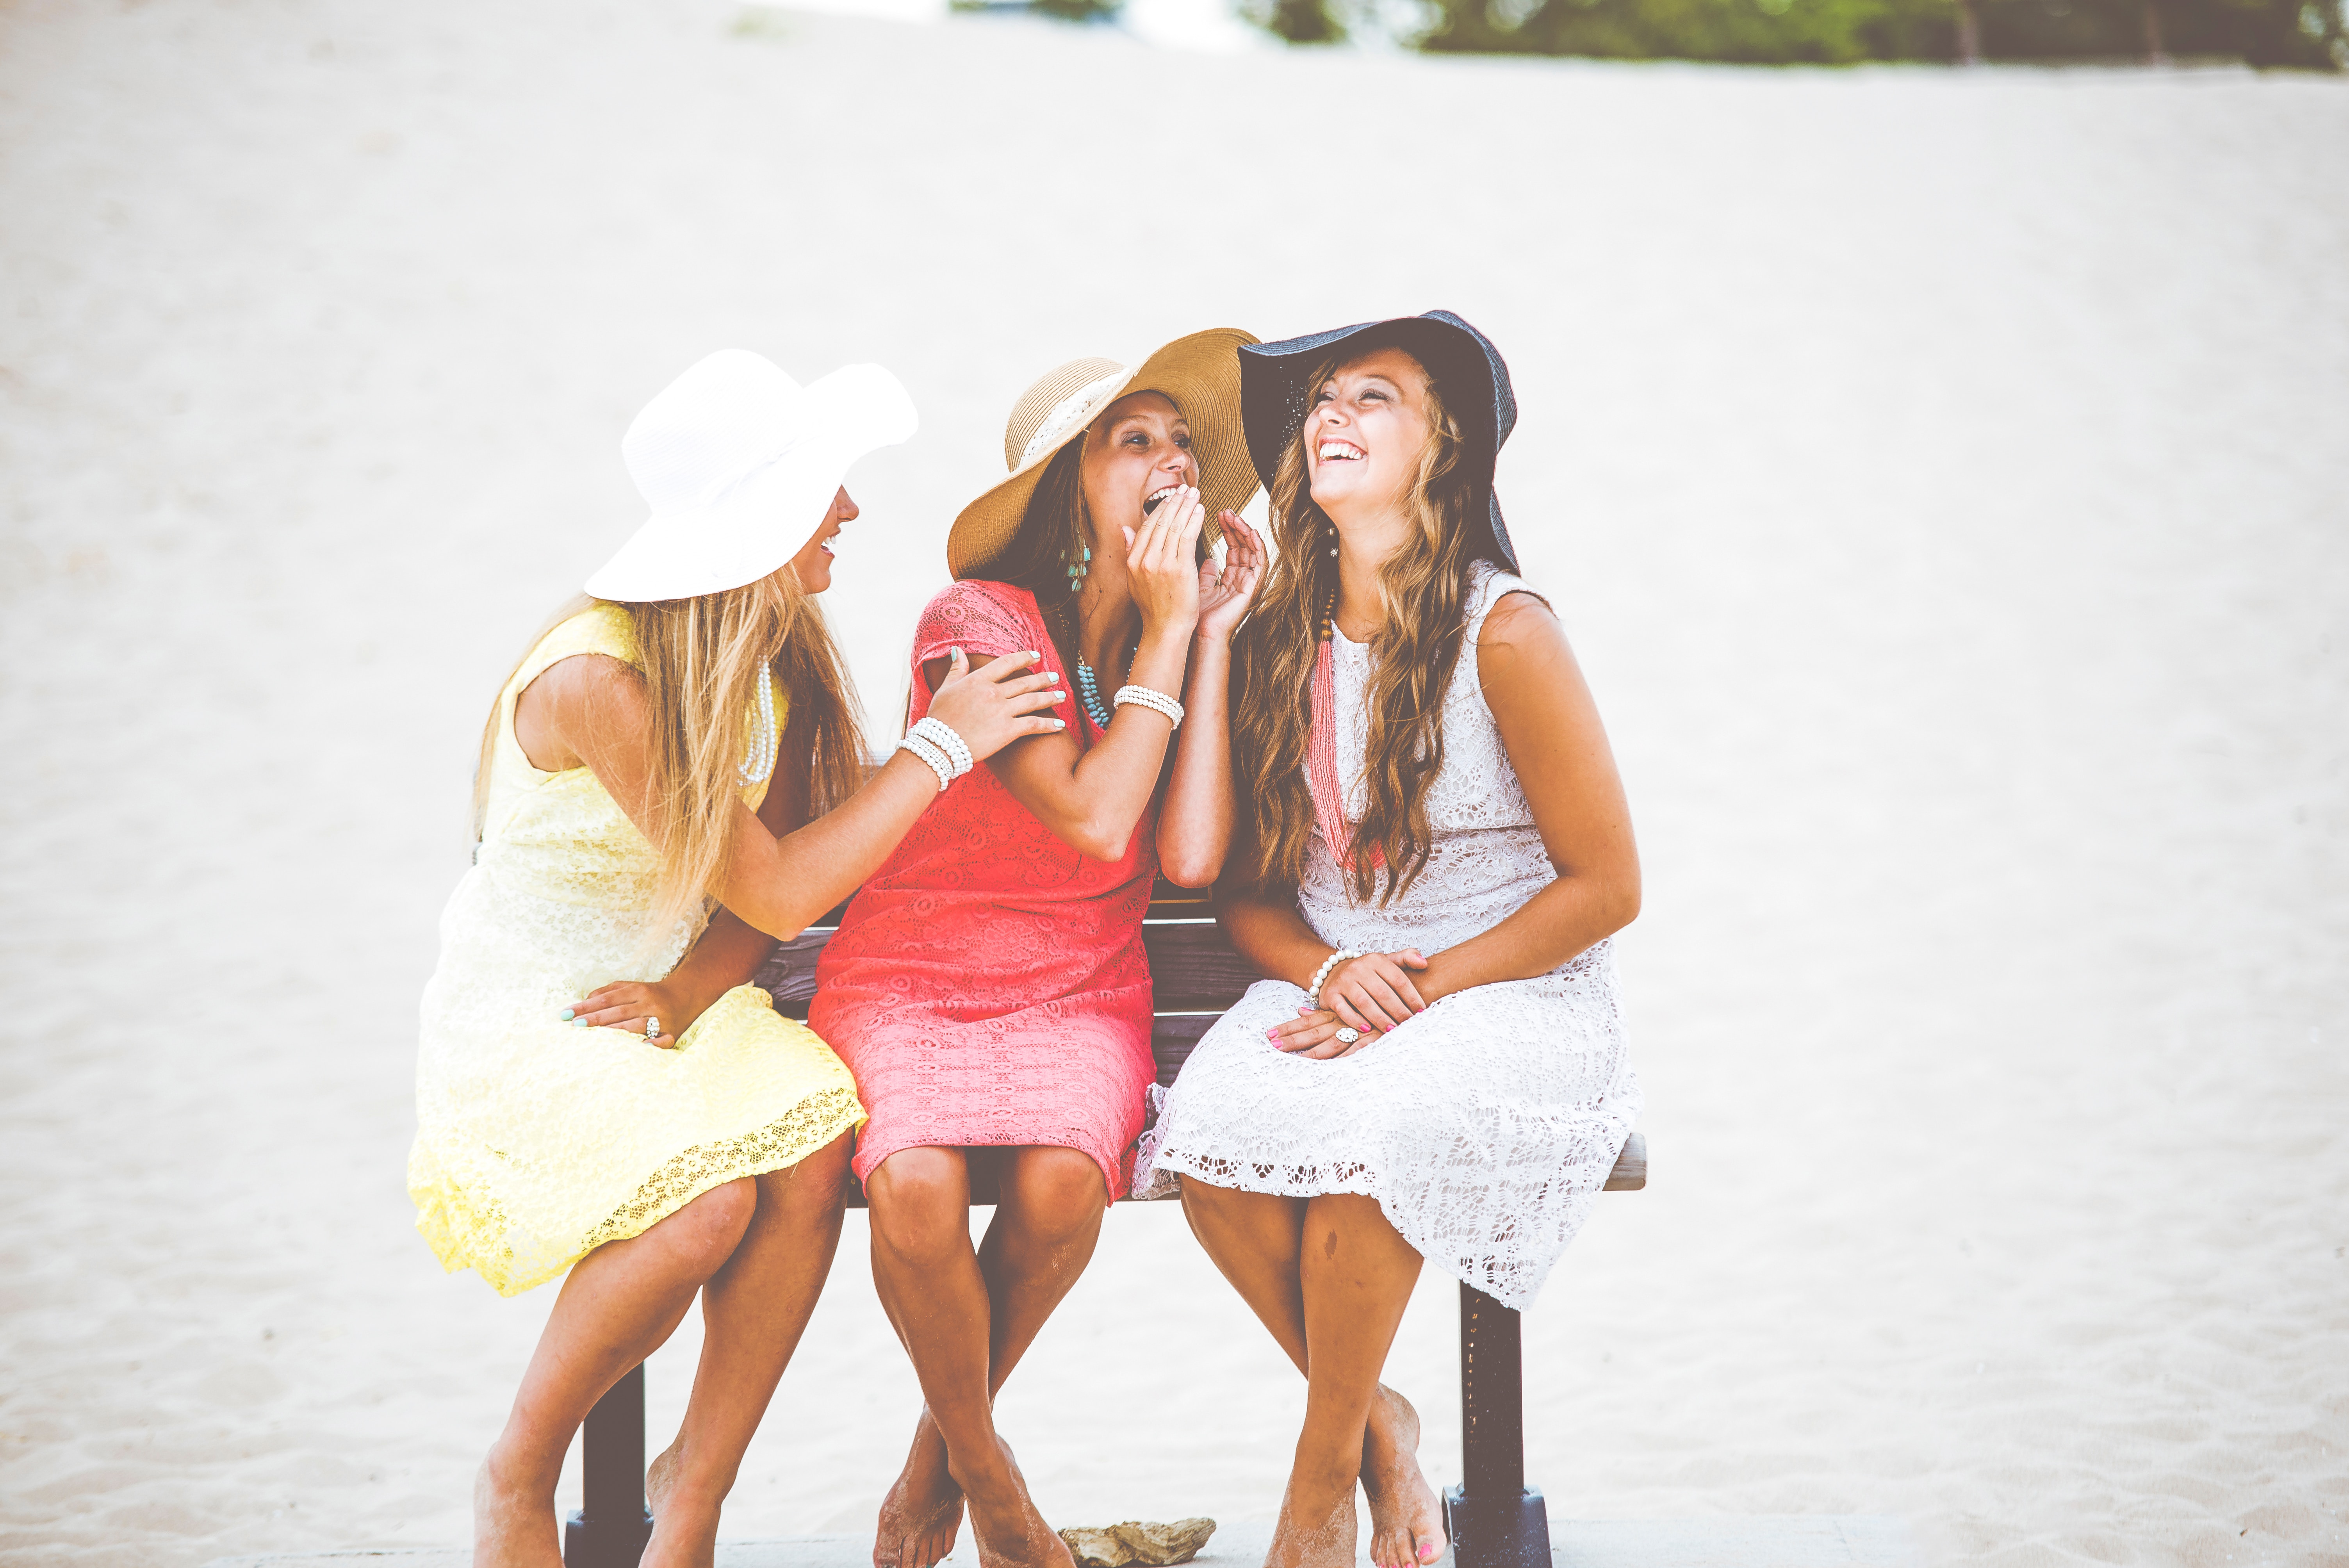 Life Mistakes: 5 reasons why gossiping may ruin your life